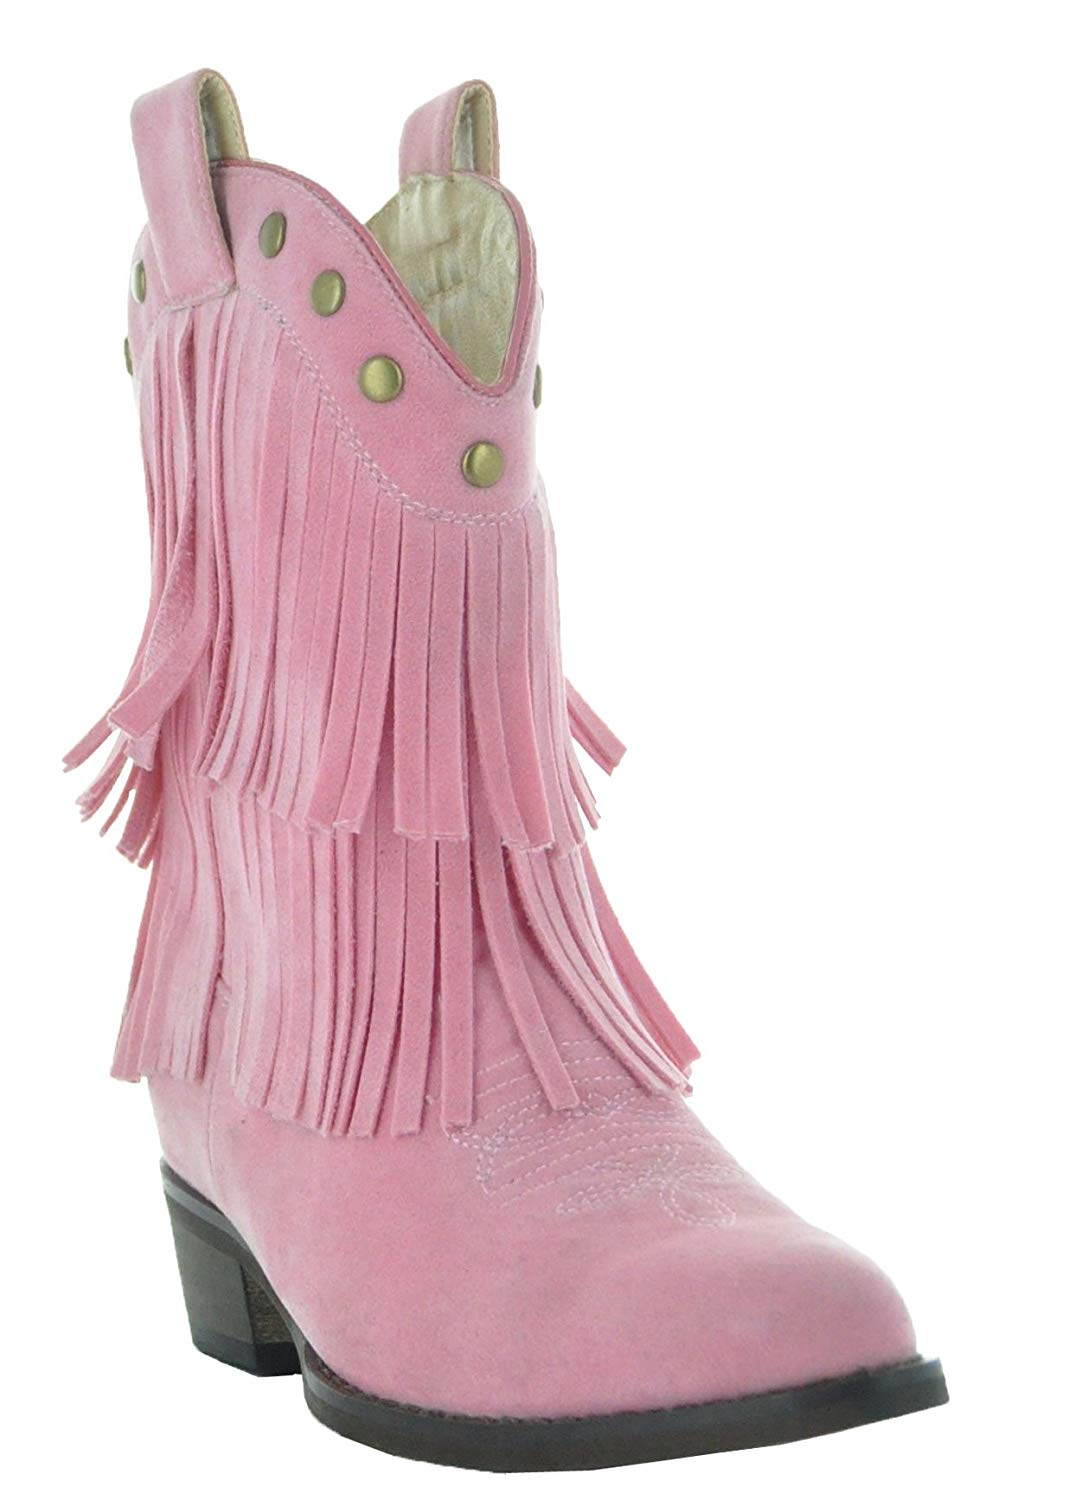 cheap prices Official Website popular brand Cheap Baby Cowgirl Boots, find Baby Cowgirl Boots deals on ...